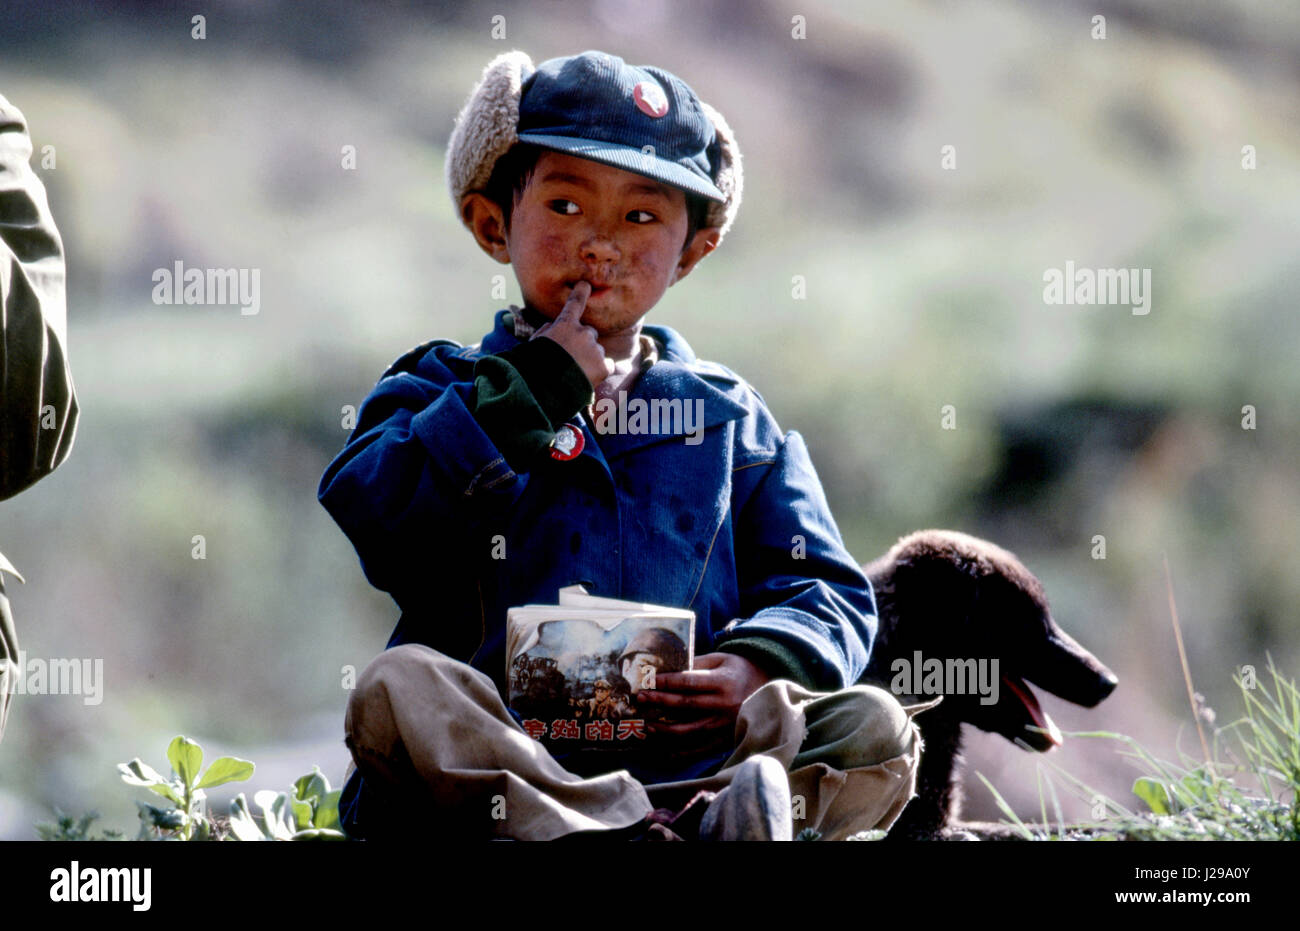 Small boy and his dog, Na Zu Can, Tibet, Sichuan Province, China - Stock Image